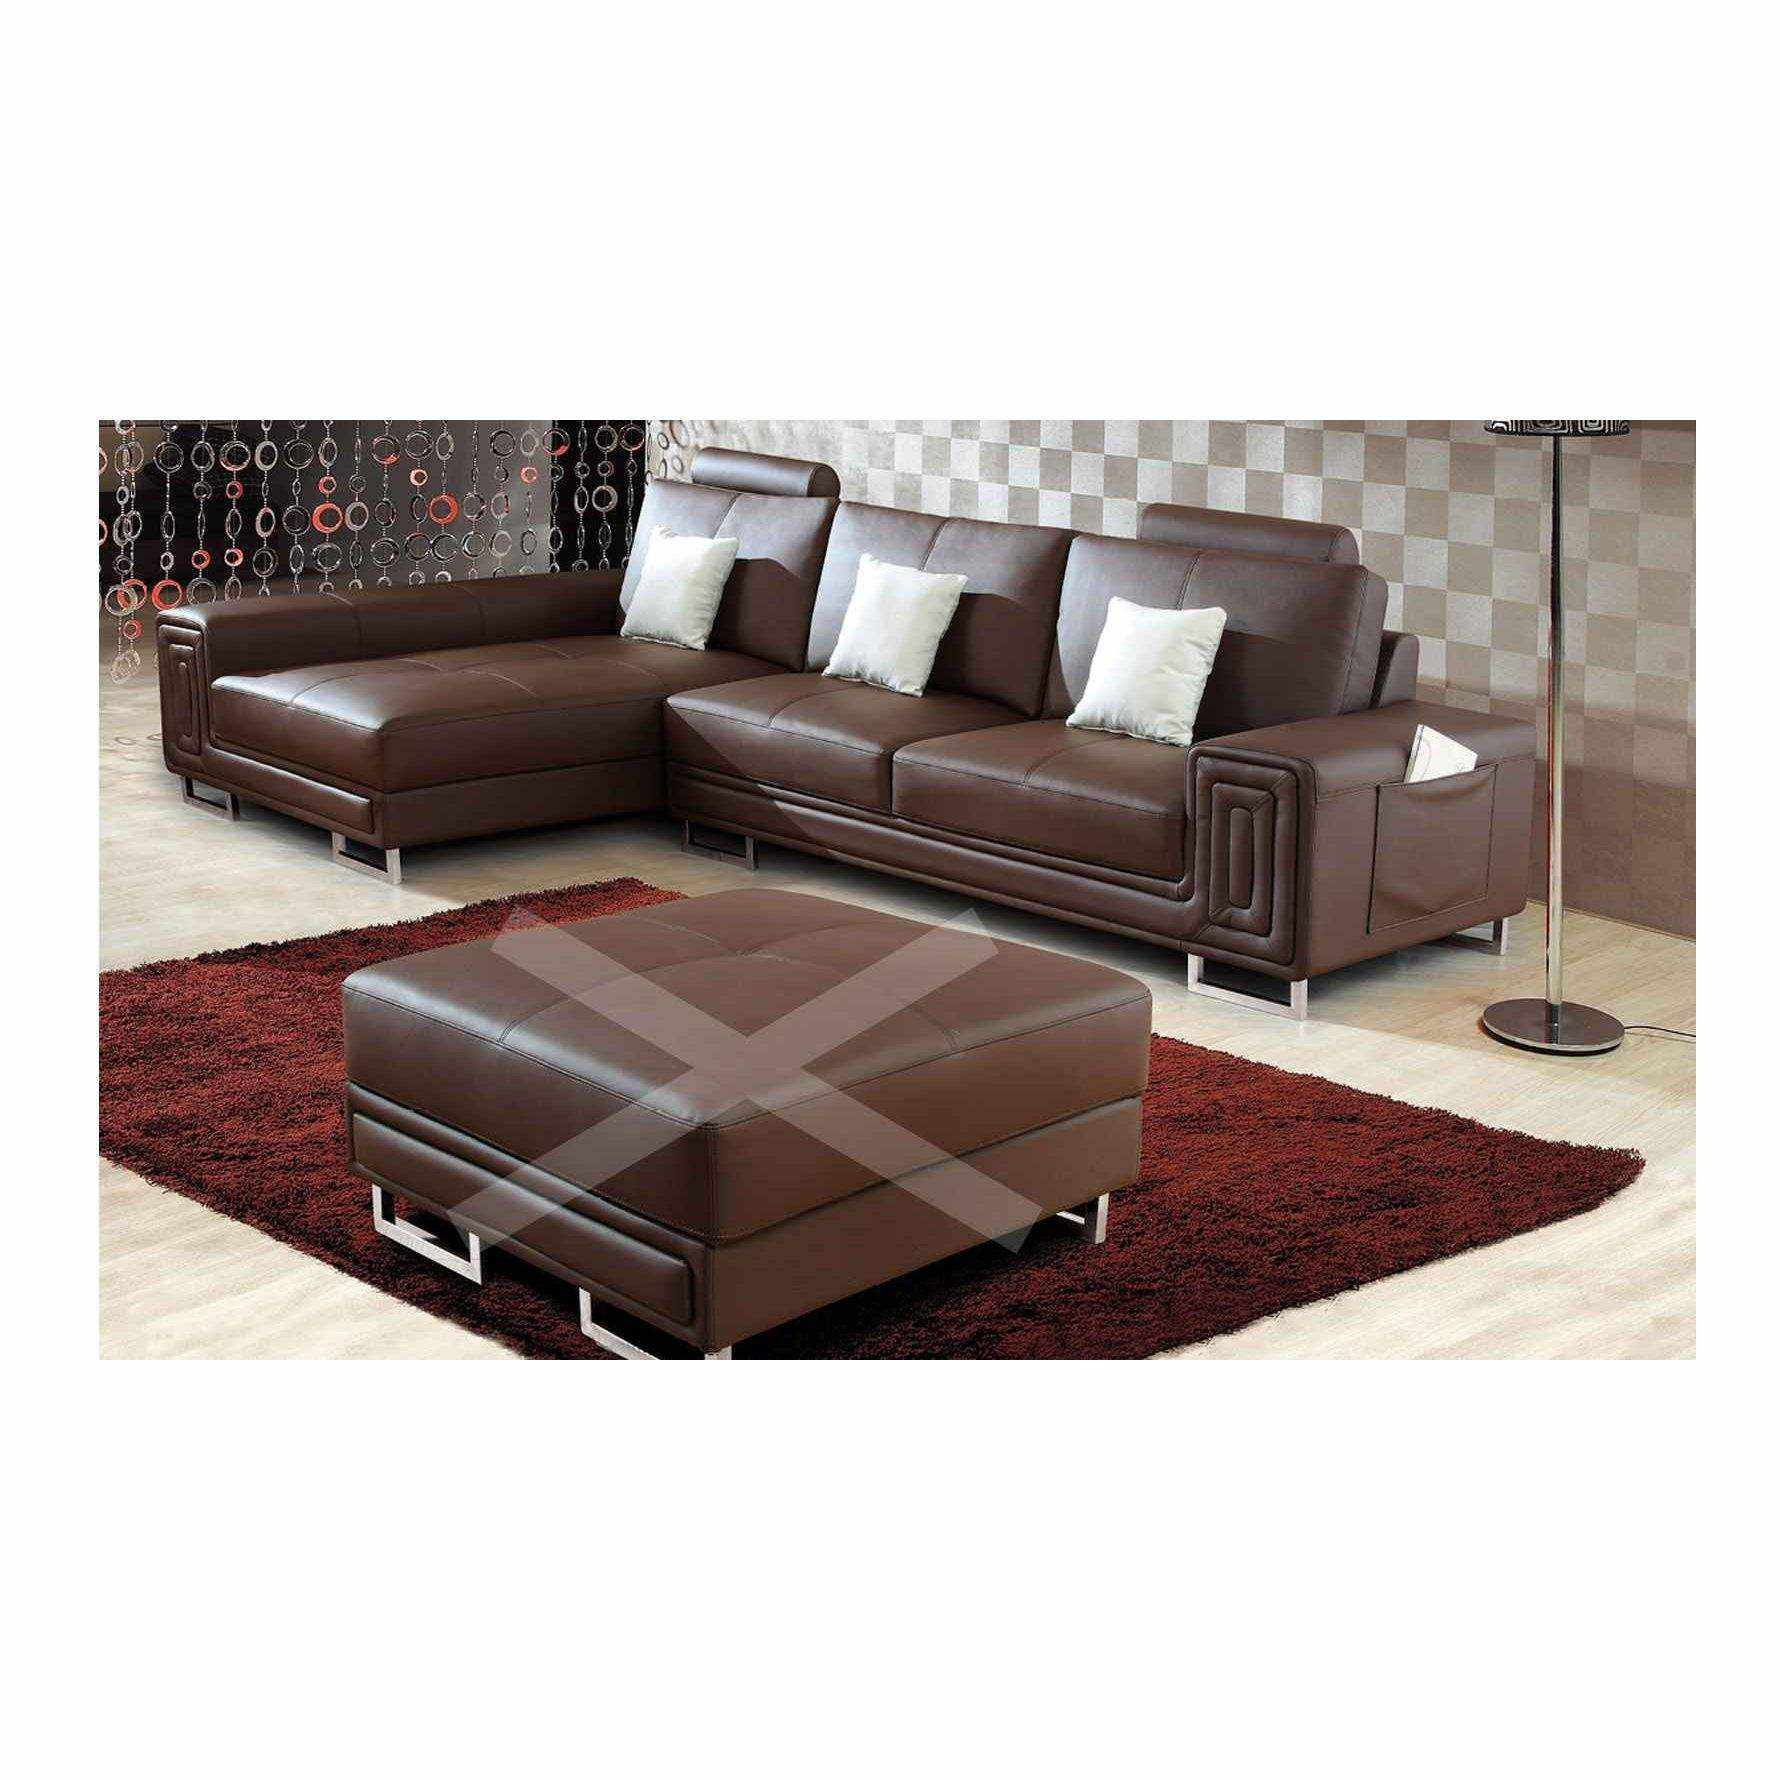 deco in paris canape cuir d angle marron tetieres relax. Black Bedroom Furniture Sets. Home Design Ideas